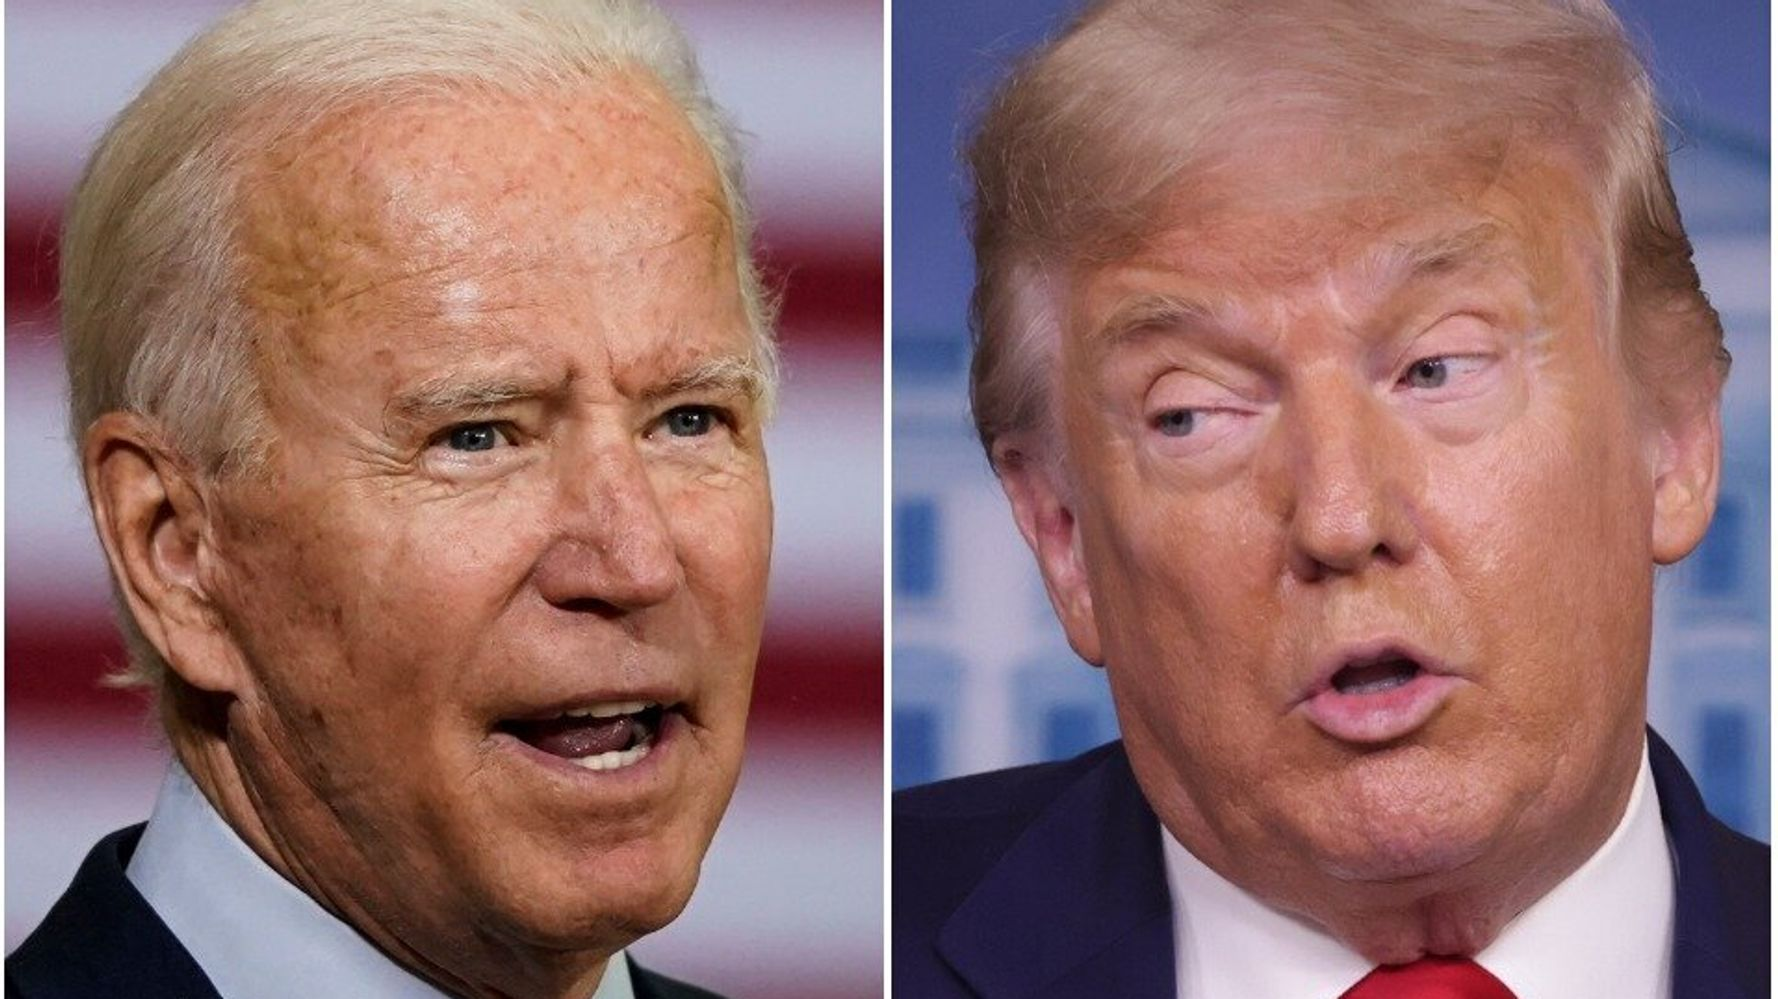 Biden Has 1-Word Response To Trump's Insult That He'll 'Listen To The Scientists'